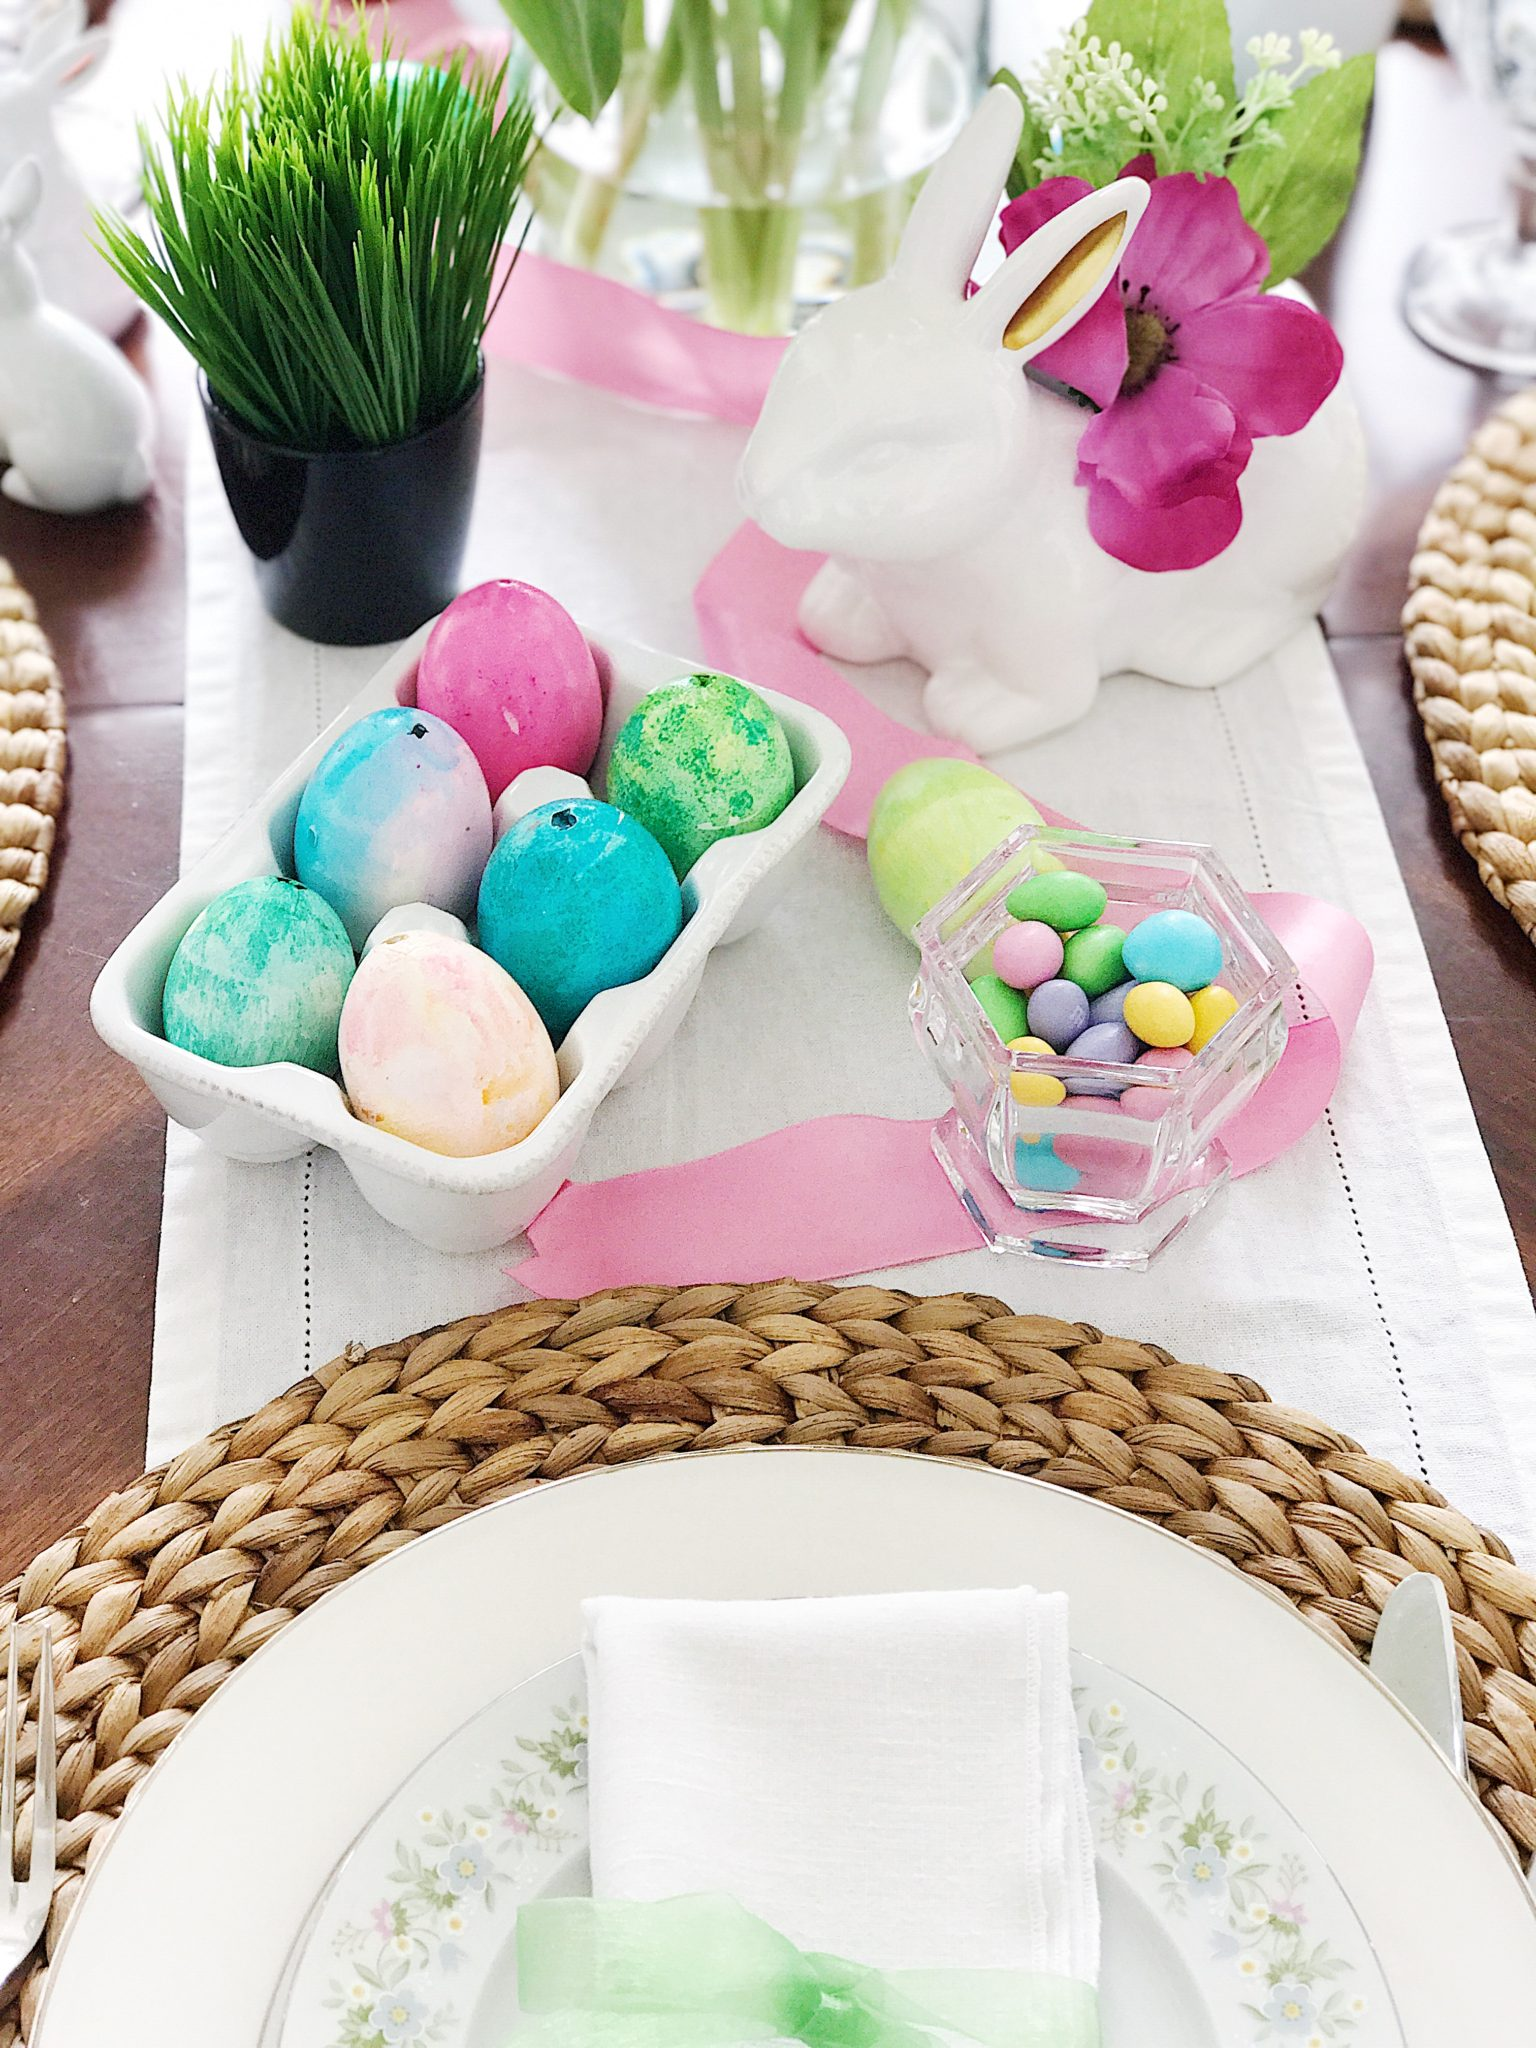 Simple, Fresh And Pretty Easter And Springtime Table Setting Ideas